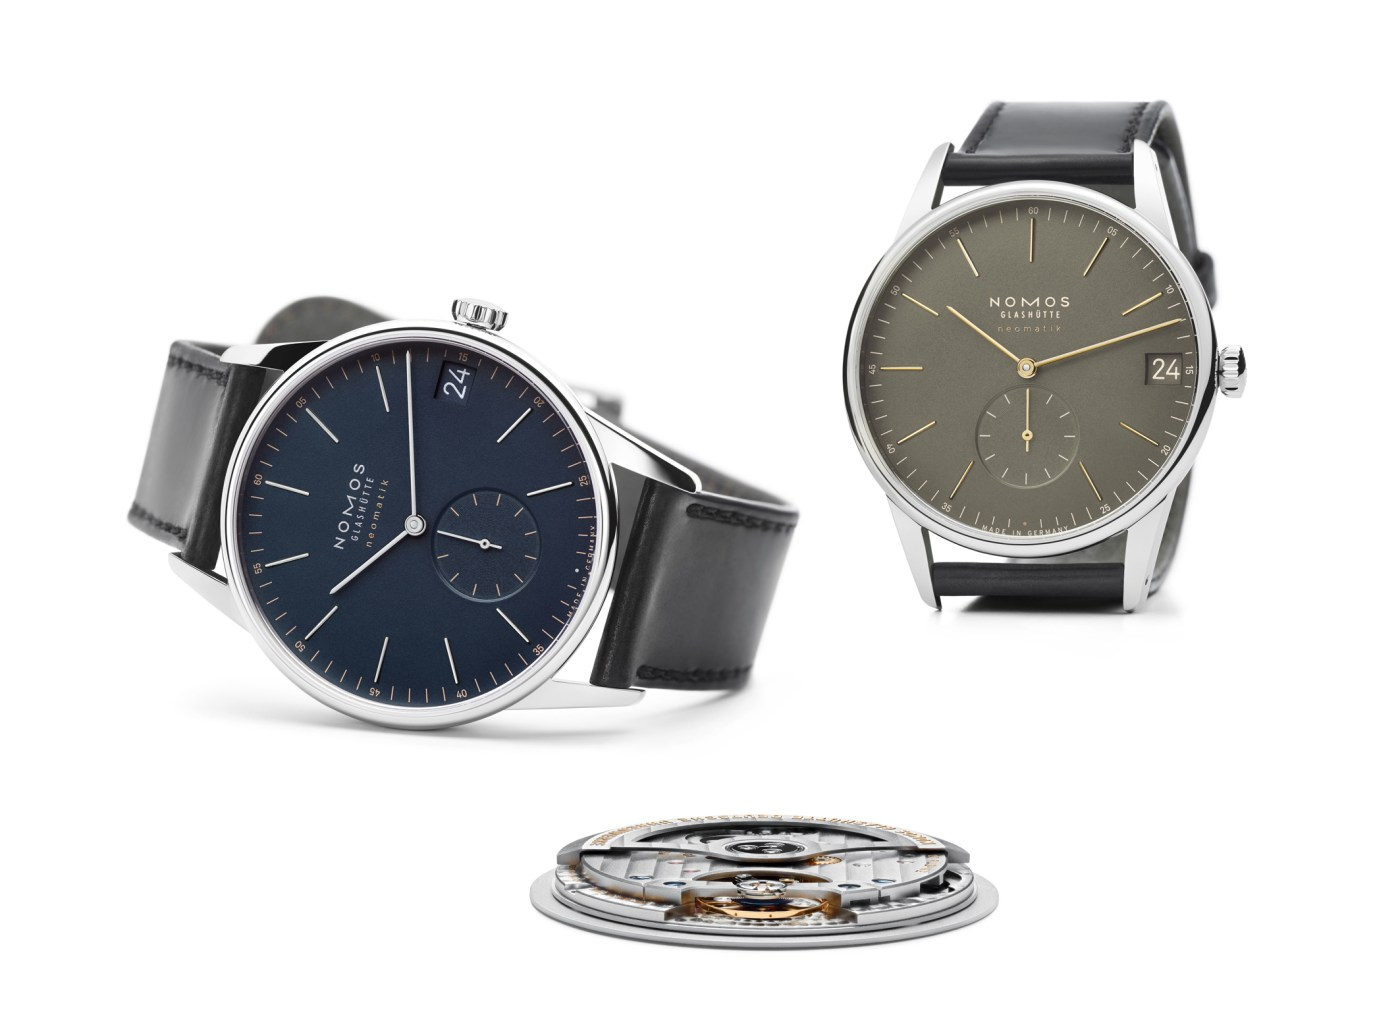 Nomos Glashutte Orion Neomatik Date Olive and Navy Colorways